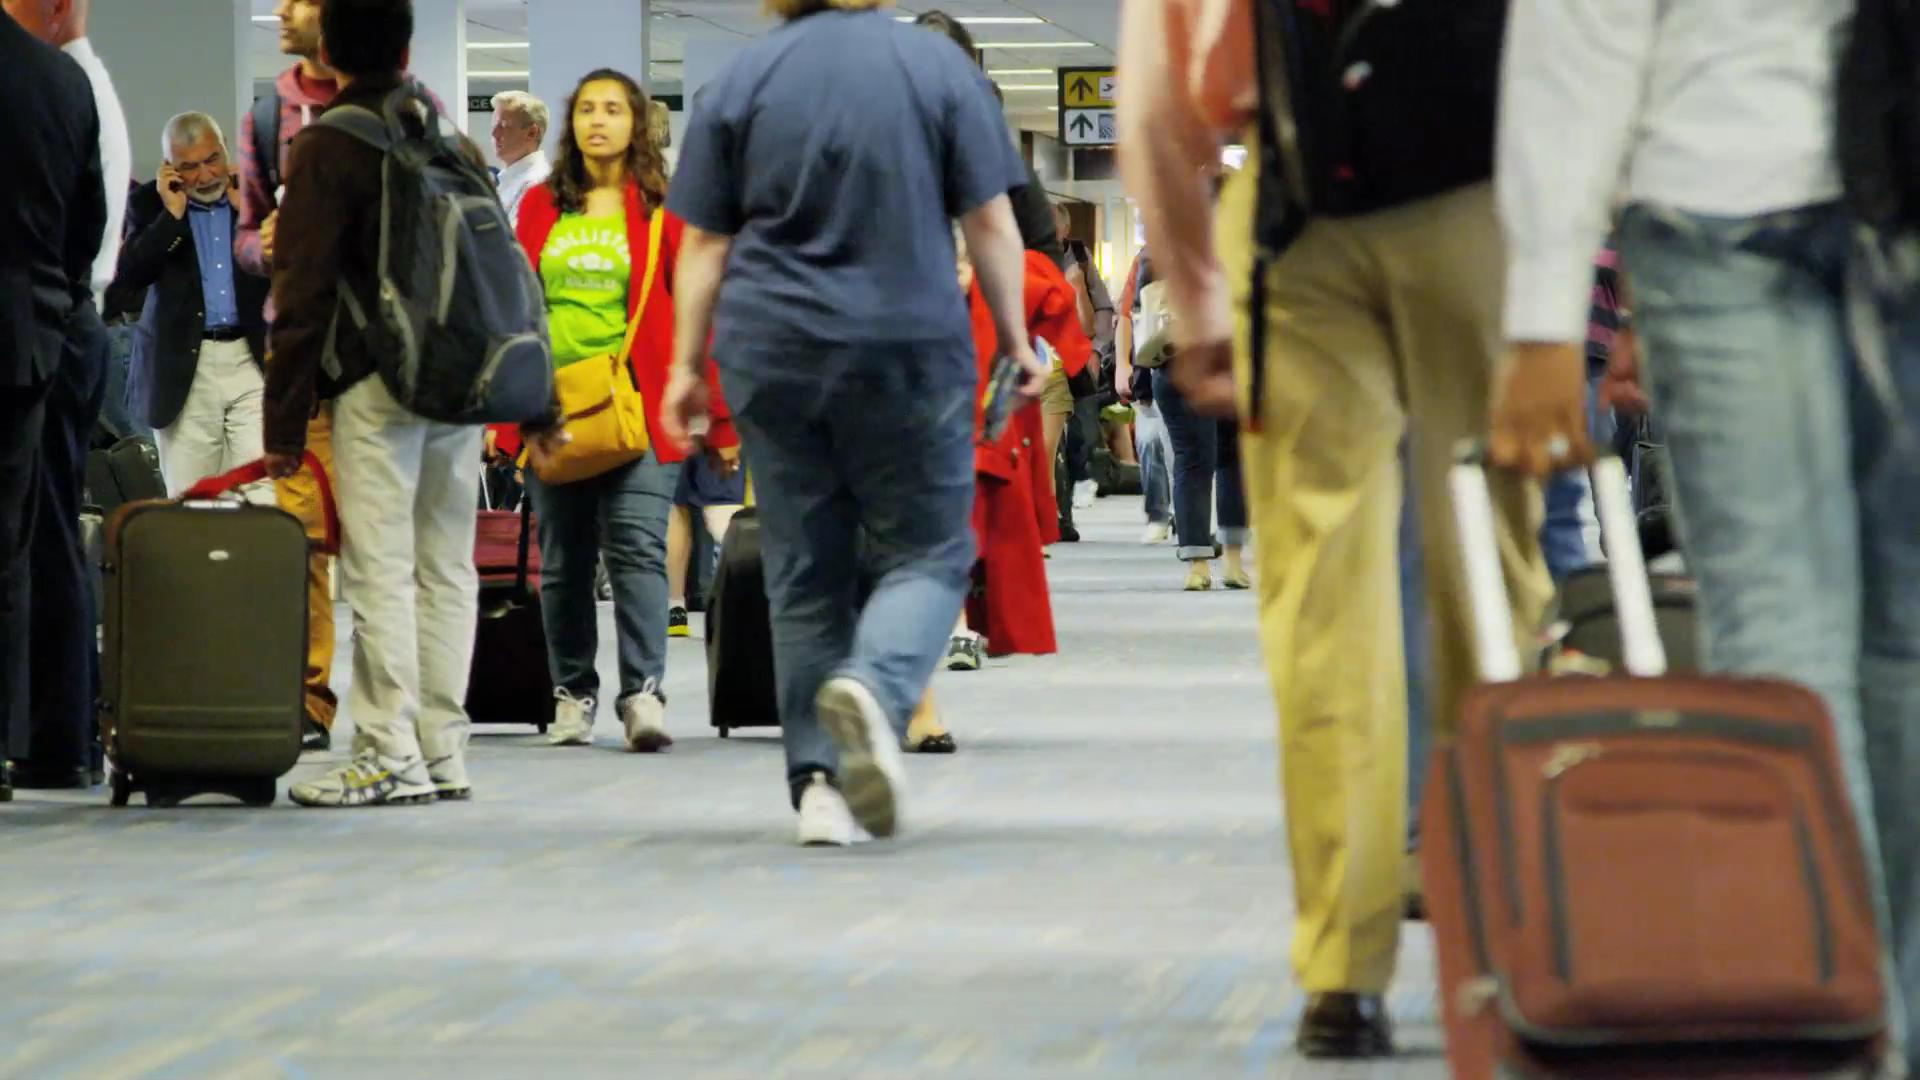 Save travel time by avoiding these airports and airlines